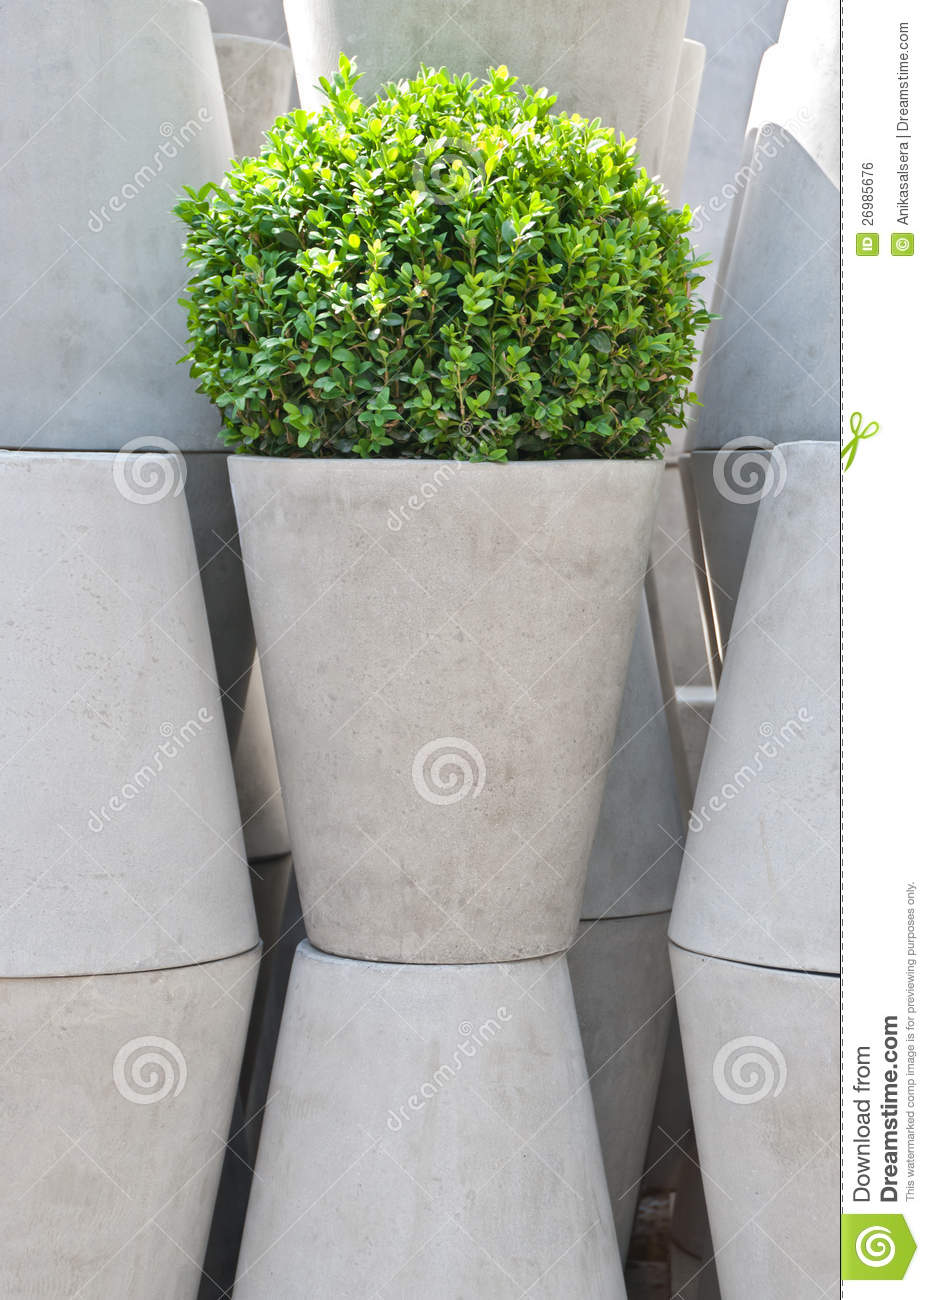 White flowering plants for pots choice image fresh lotus flowers white flower pots and green plant stock photo image of close mightylinksfo